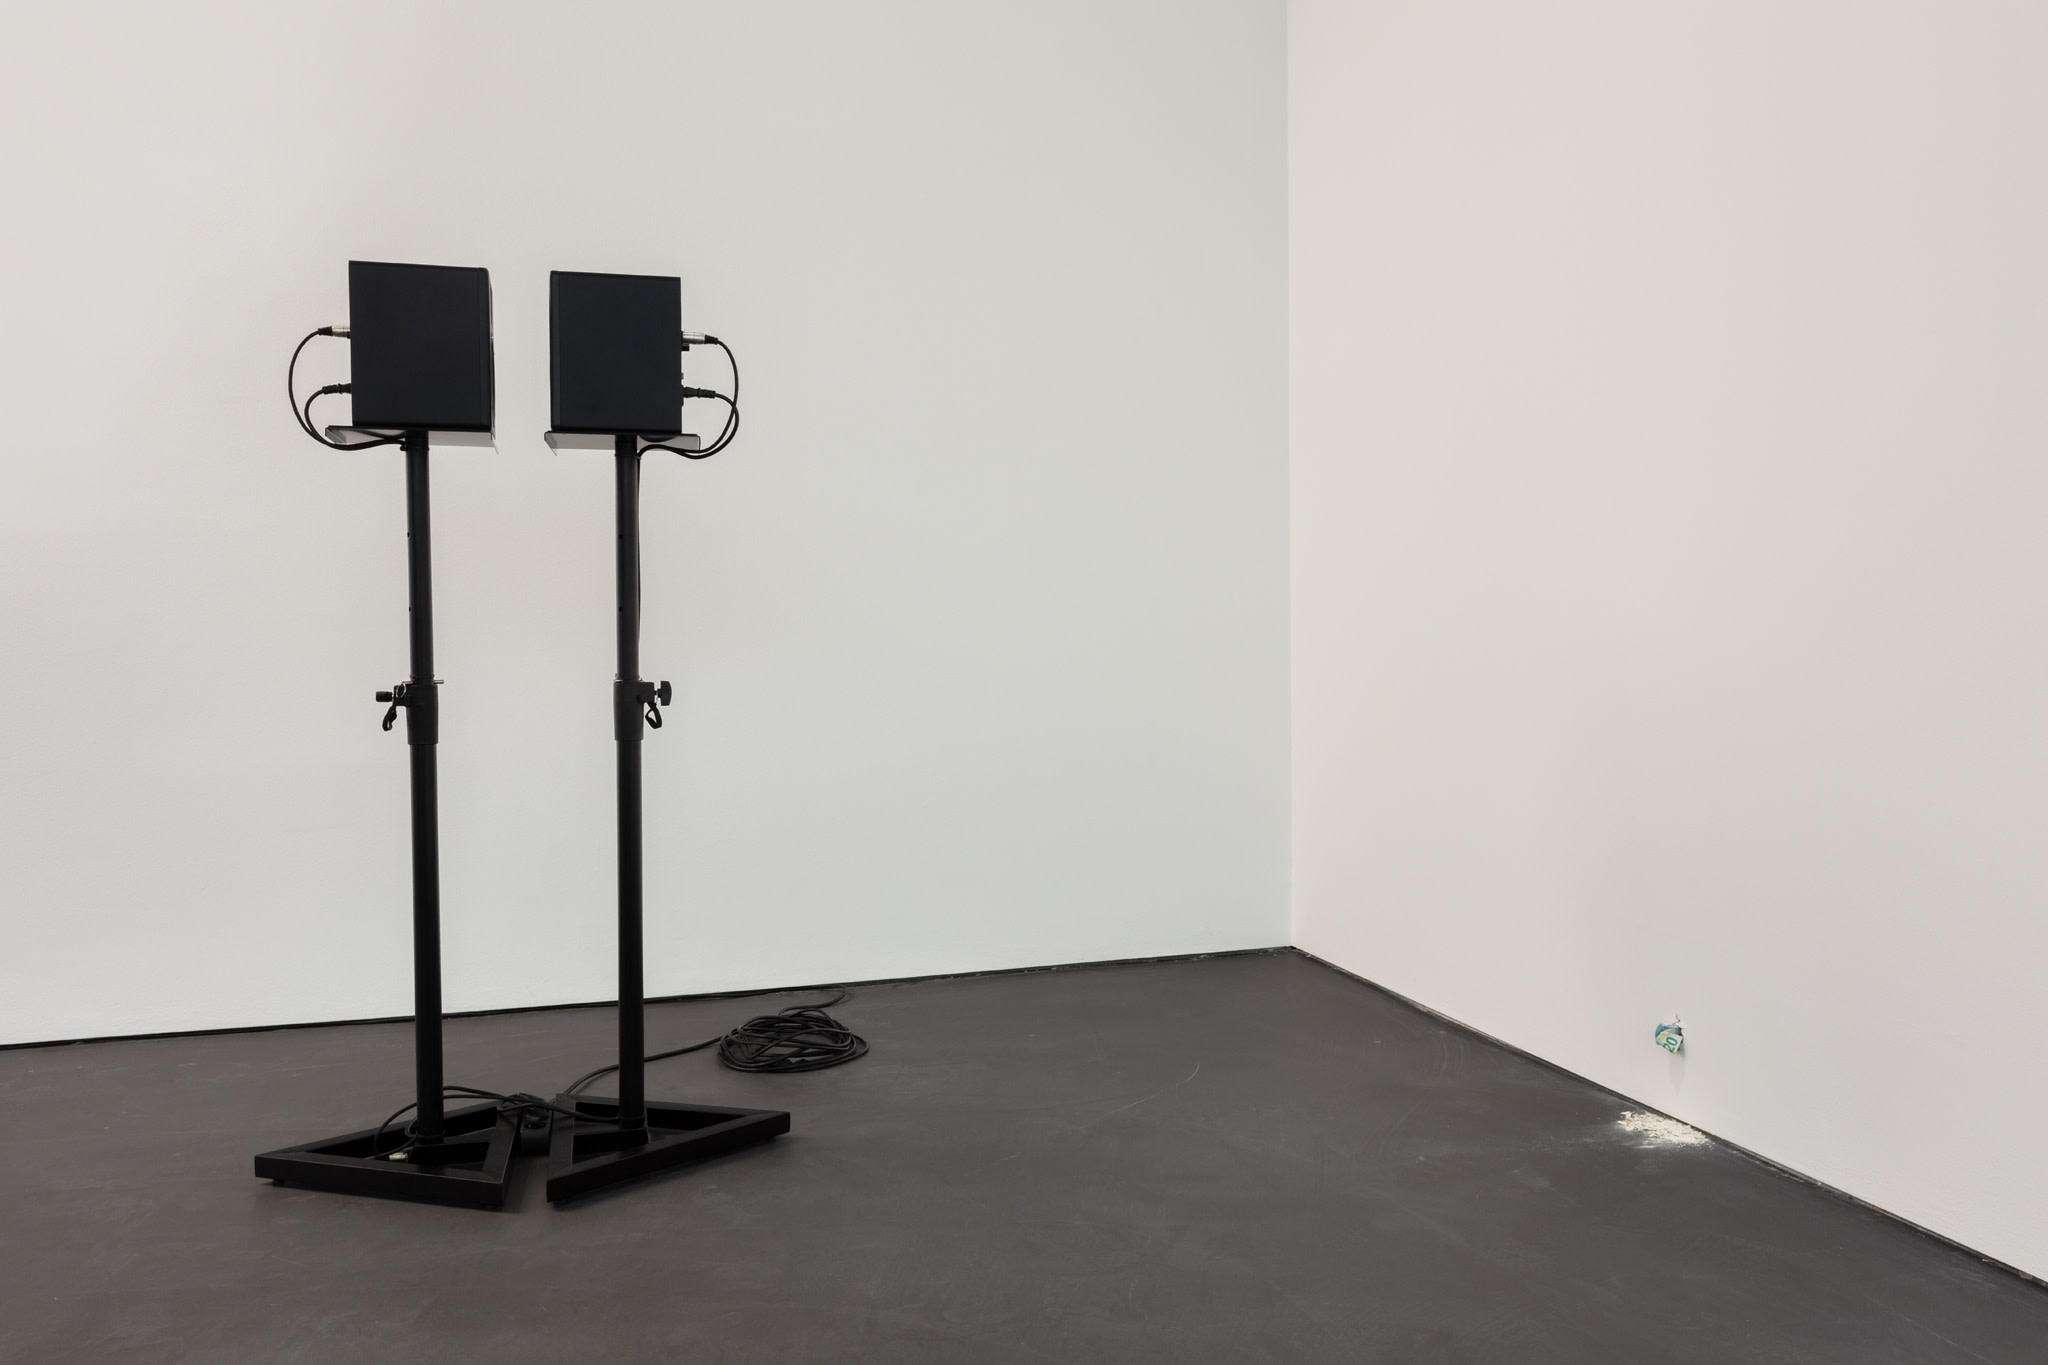 Left: Ceal Floyer, Mutual Admiration, 2015, two speakers standing in front of each other on stands, connected to two iPod Nanos playing two looped audio tracks, (overall), edition of 3; close to the floor: Ryan Gander, I'm never coming back to London again, 2017, animatronics, Euro notes, plaster, speaker, audio file, dimensions variable, edition of 1. Photo © Andrea Rossetti